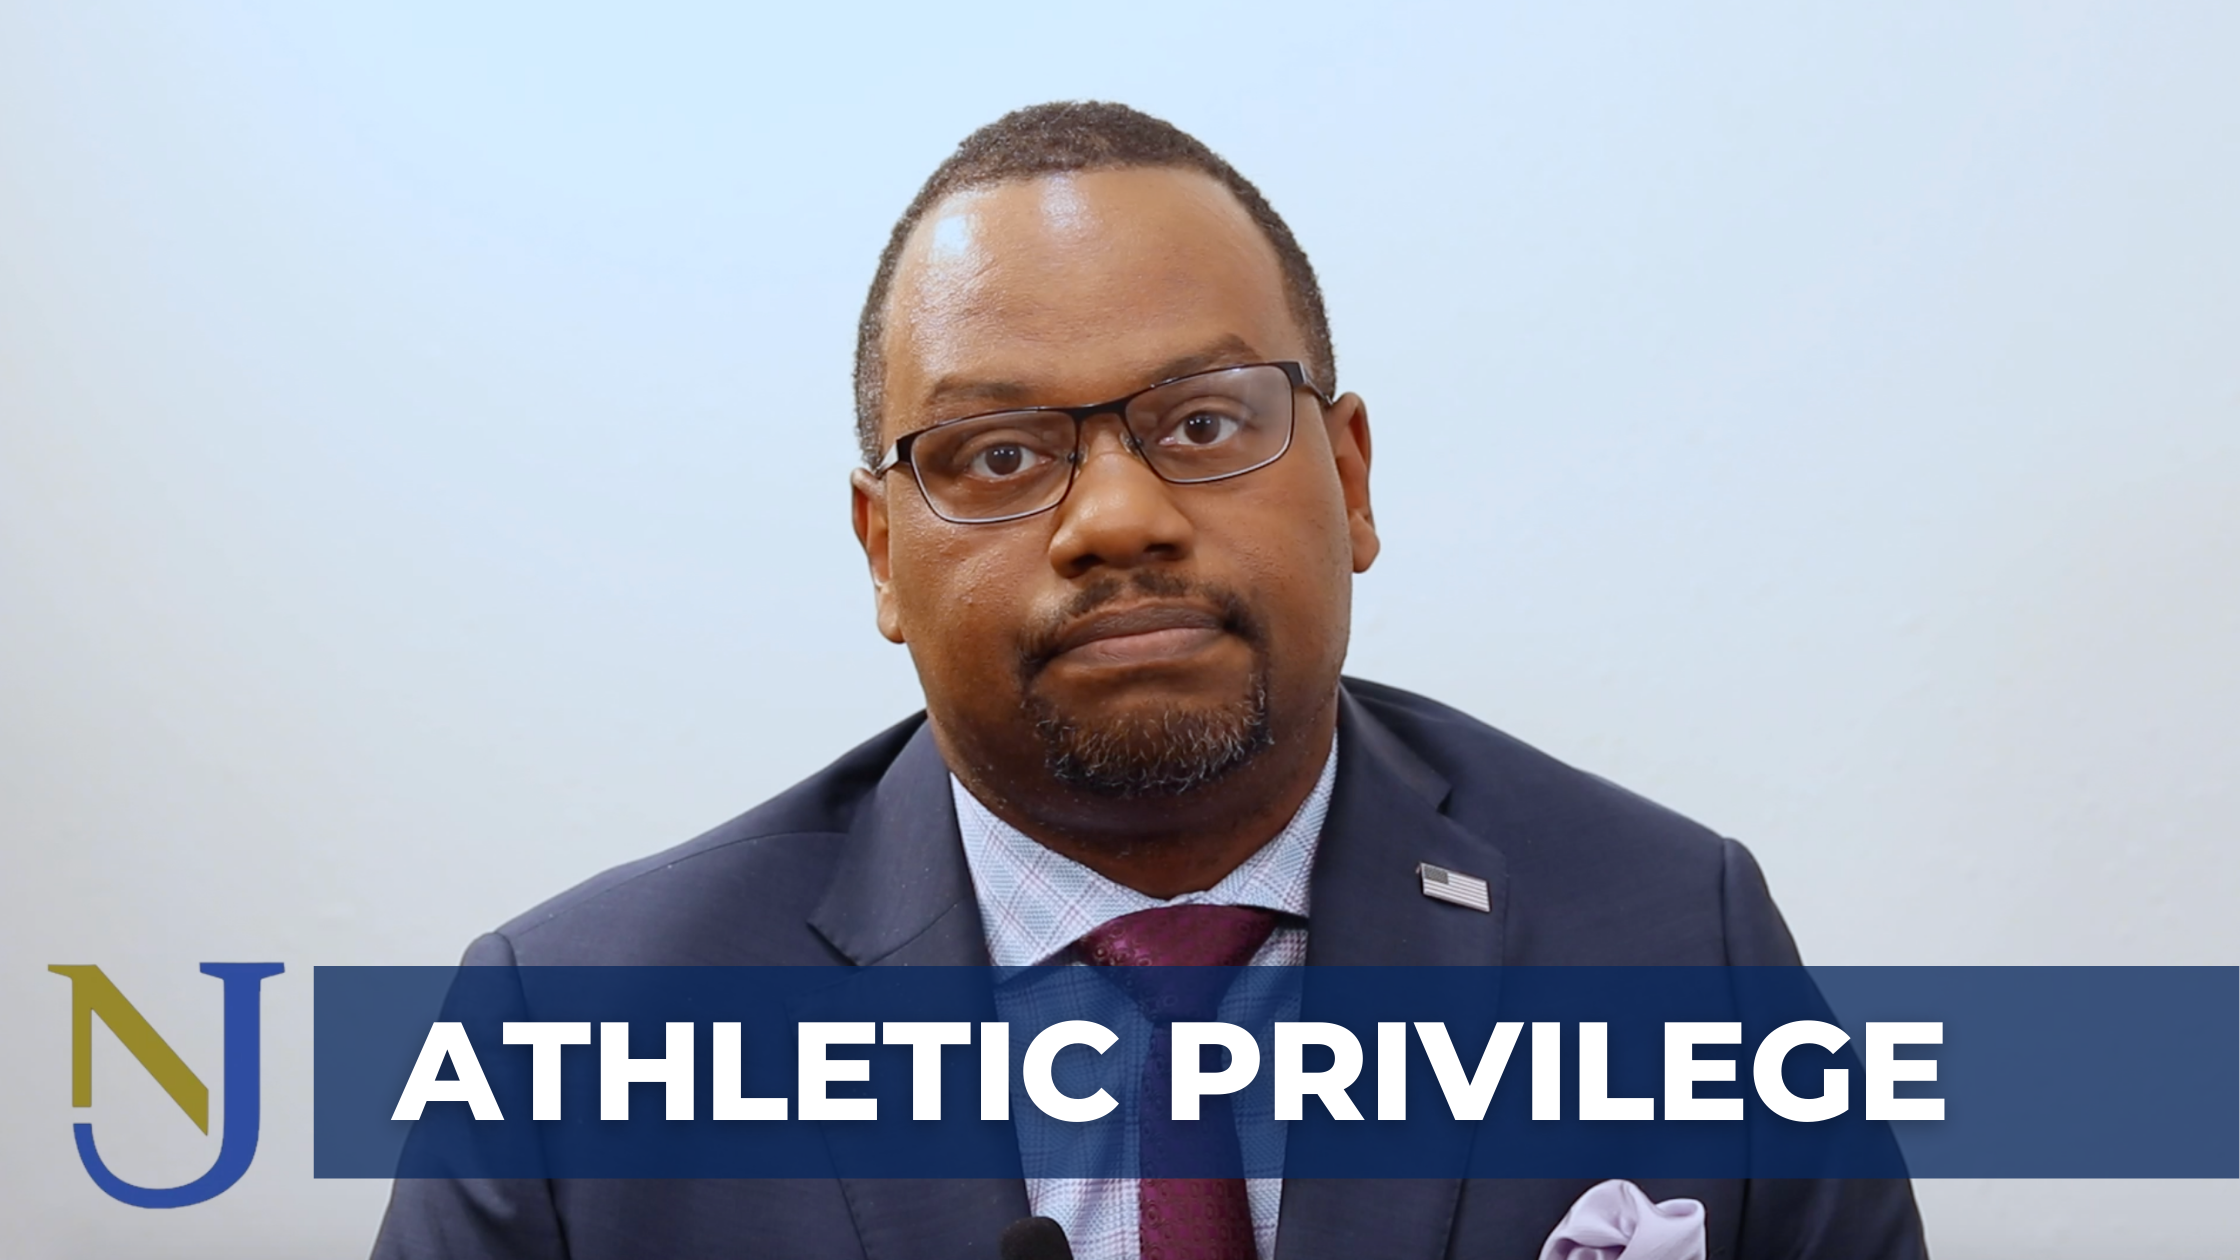 Athletic Privilege